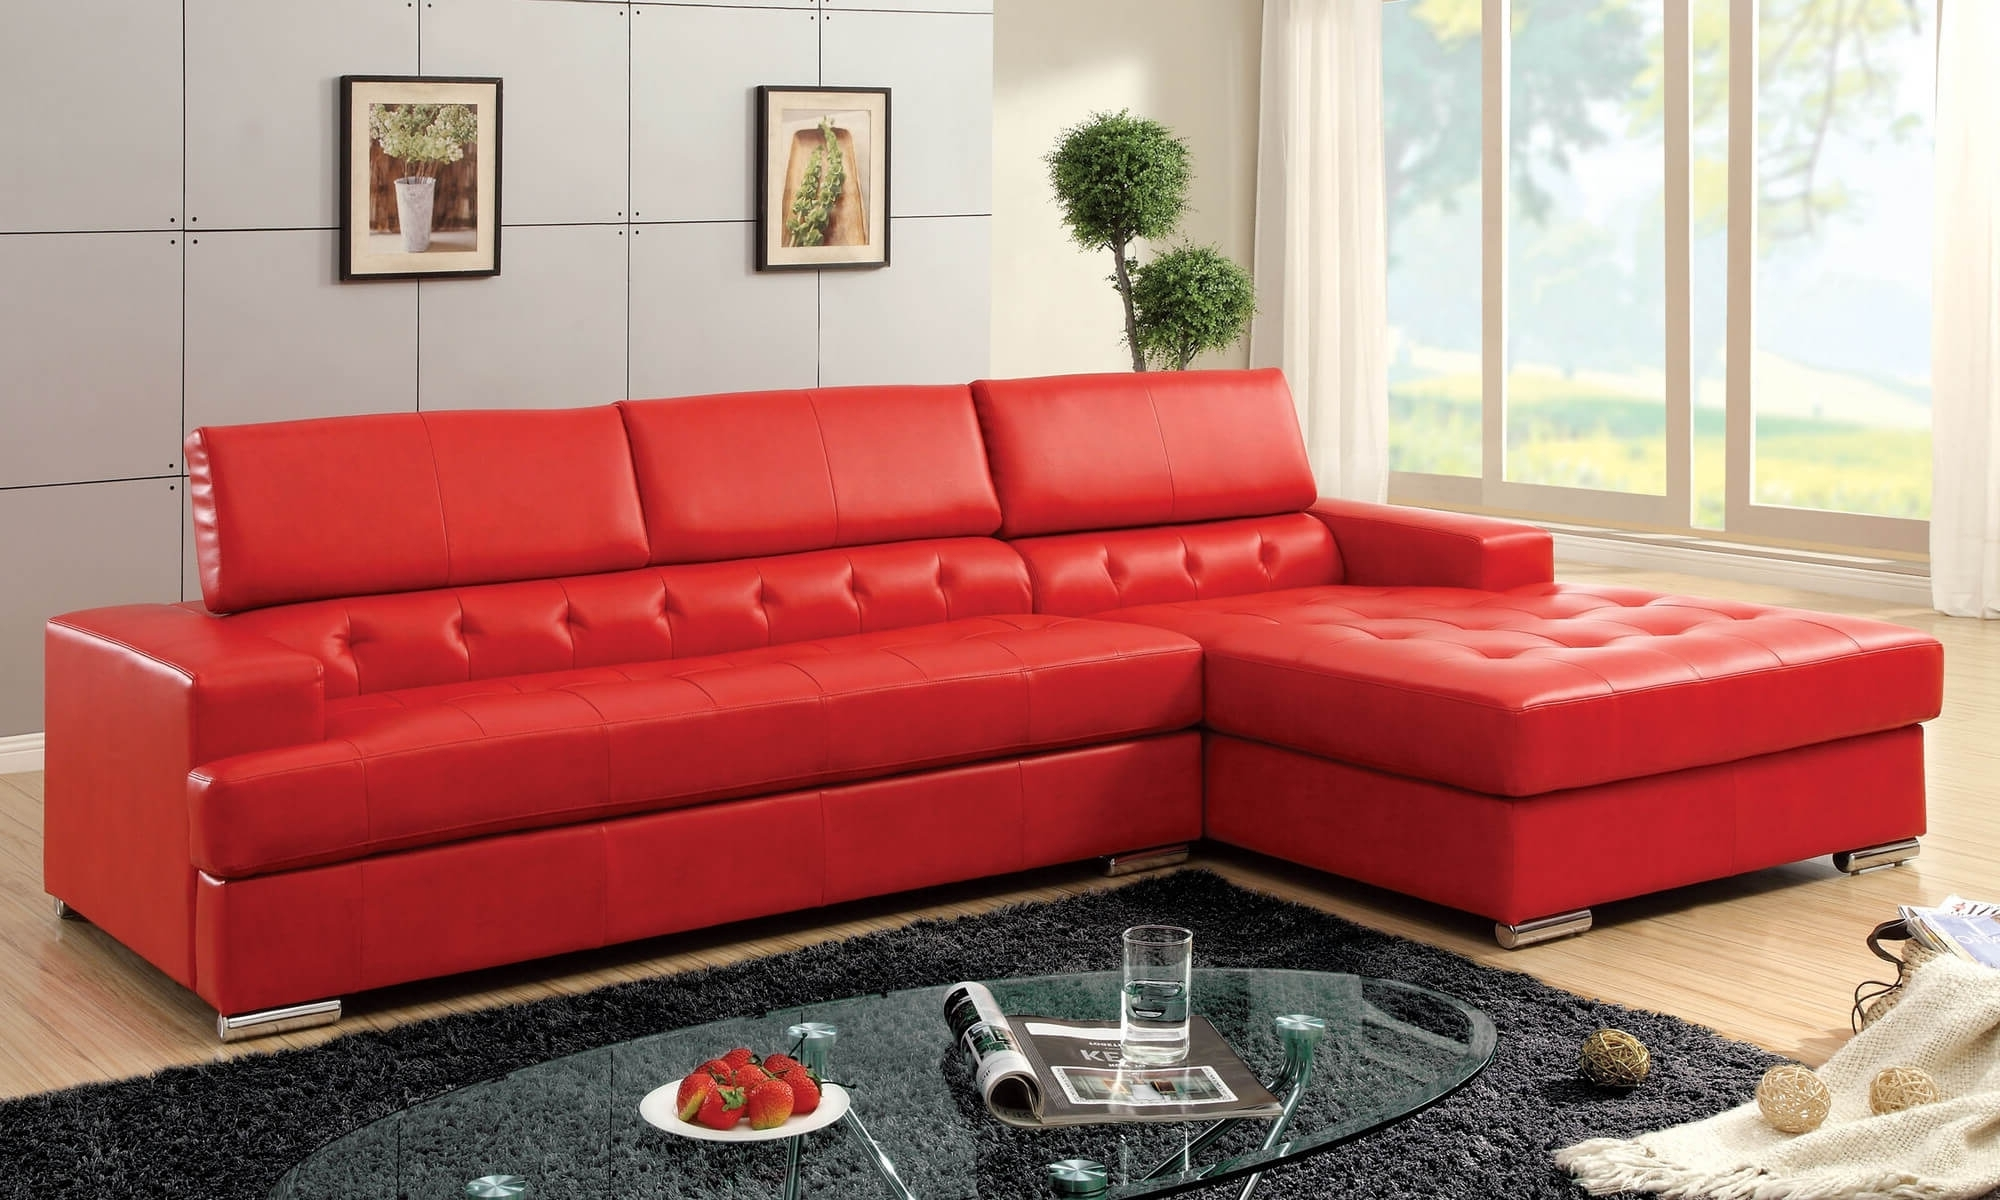 2018 Red Black Sectional Sofas For Sofas : Red Sectional Couch L Sofa Modular Sectional Sofa Gray (View 1 of 15)